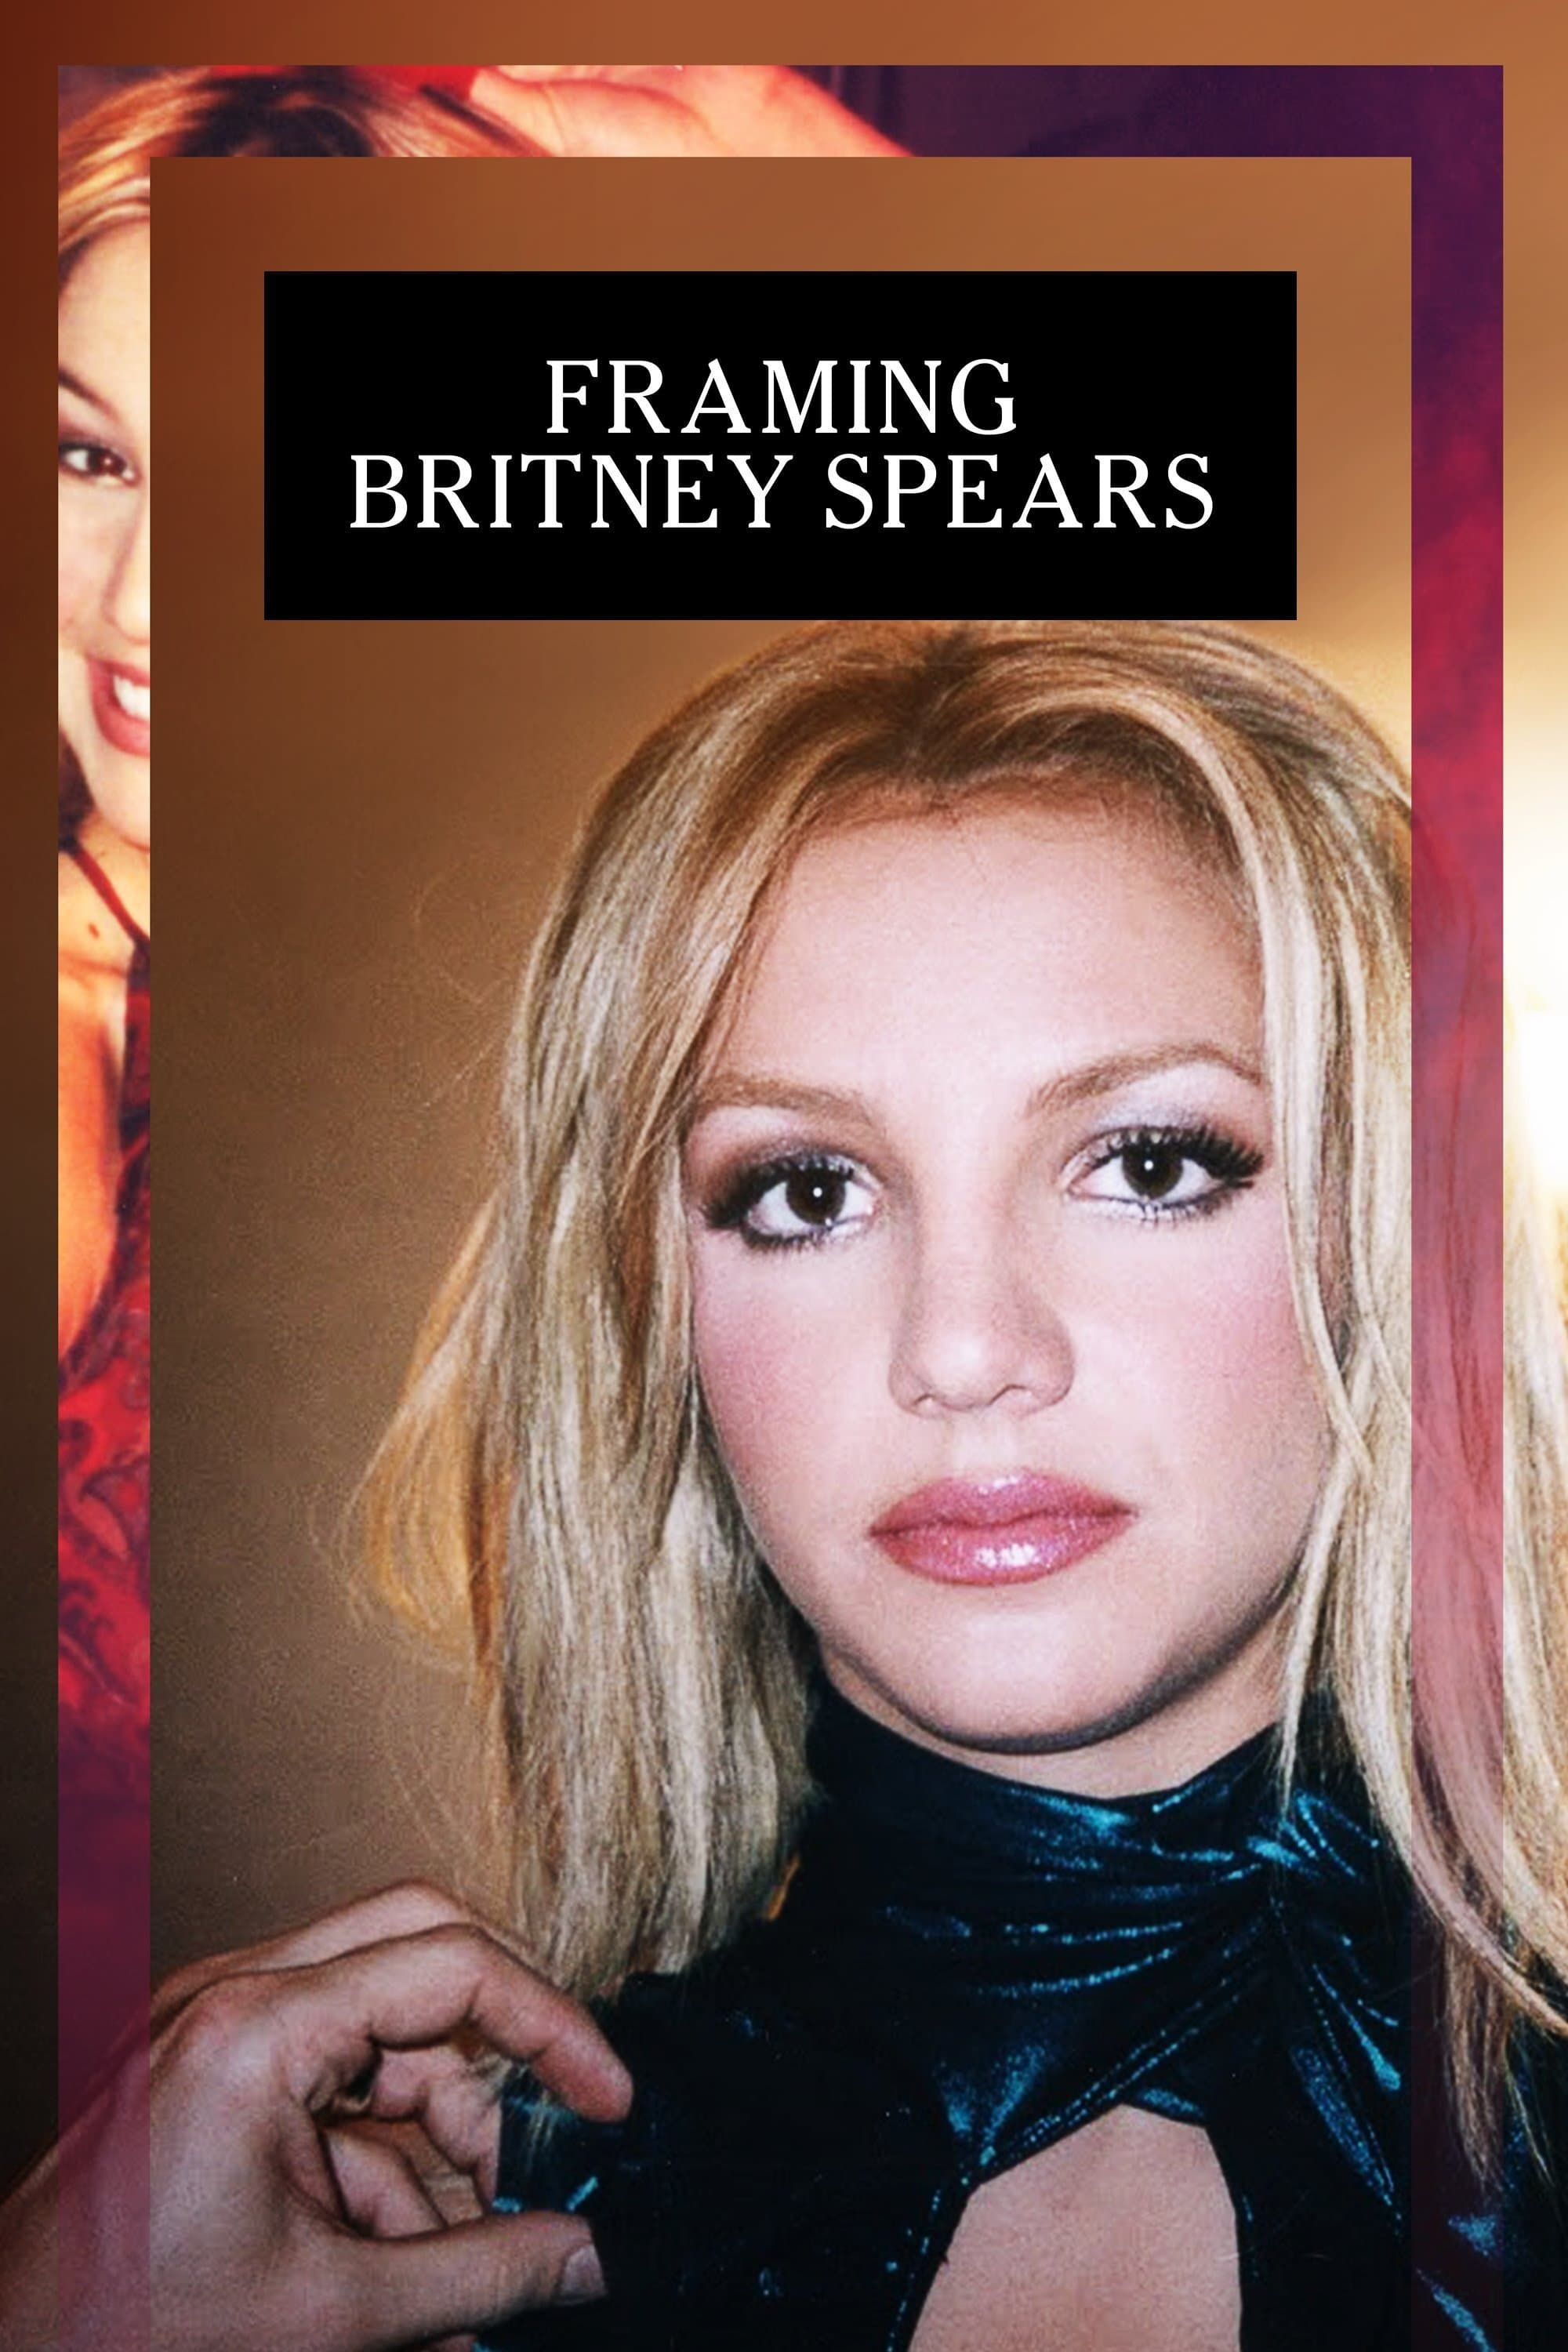 Framing Britney Spears - Documentaire (2021)